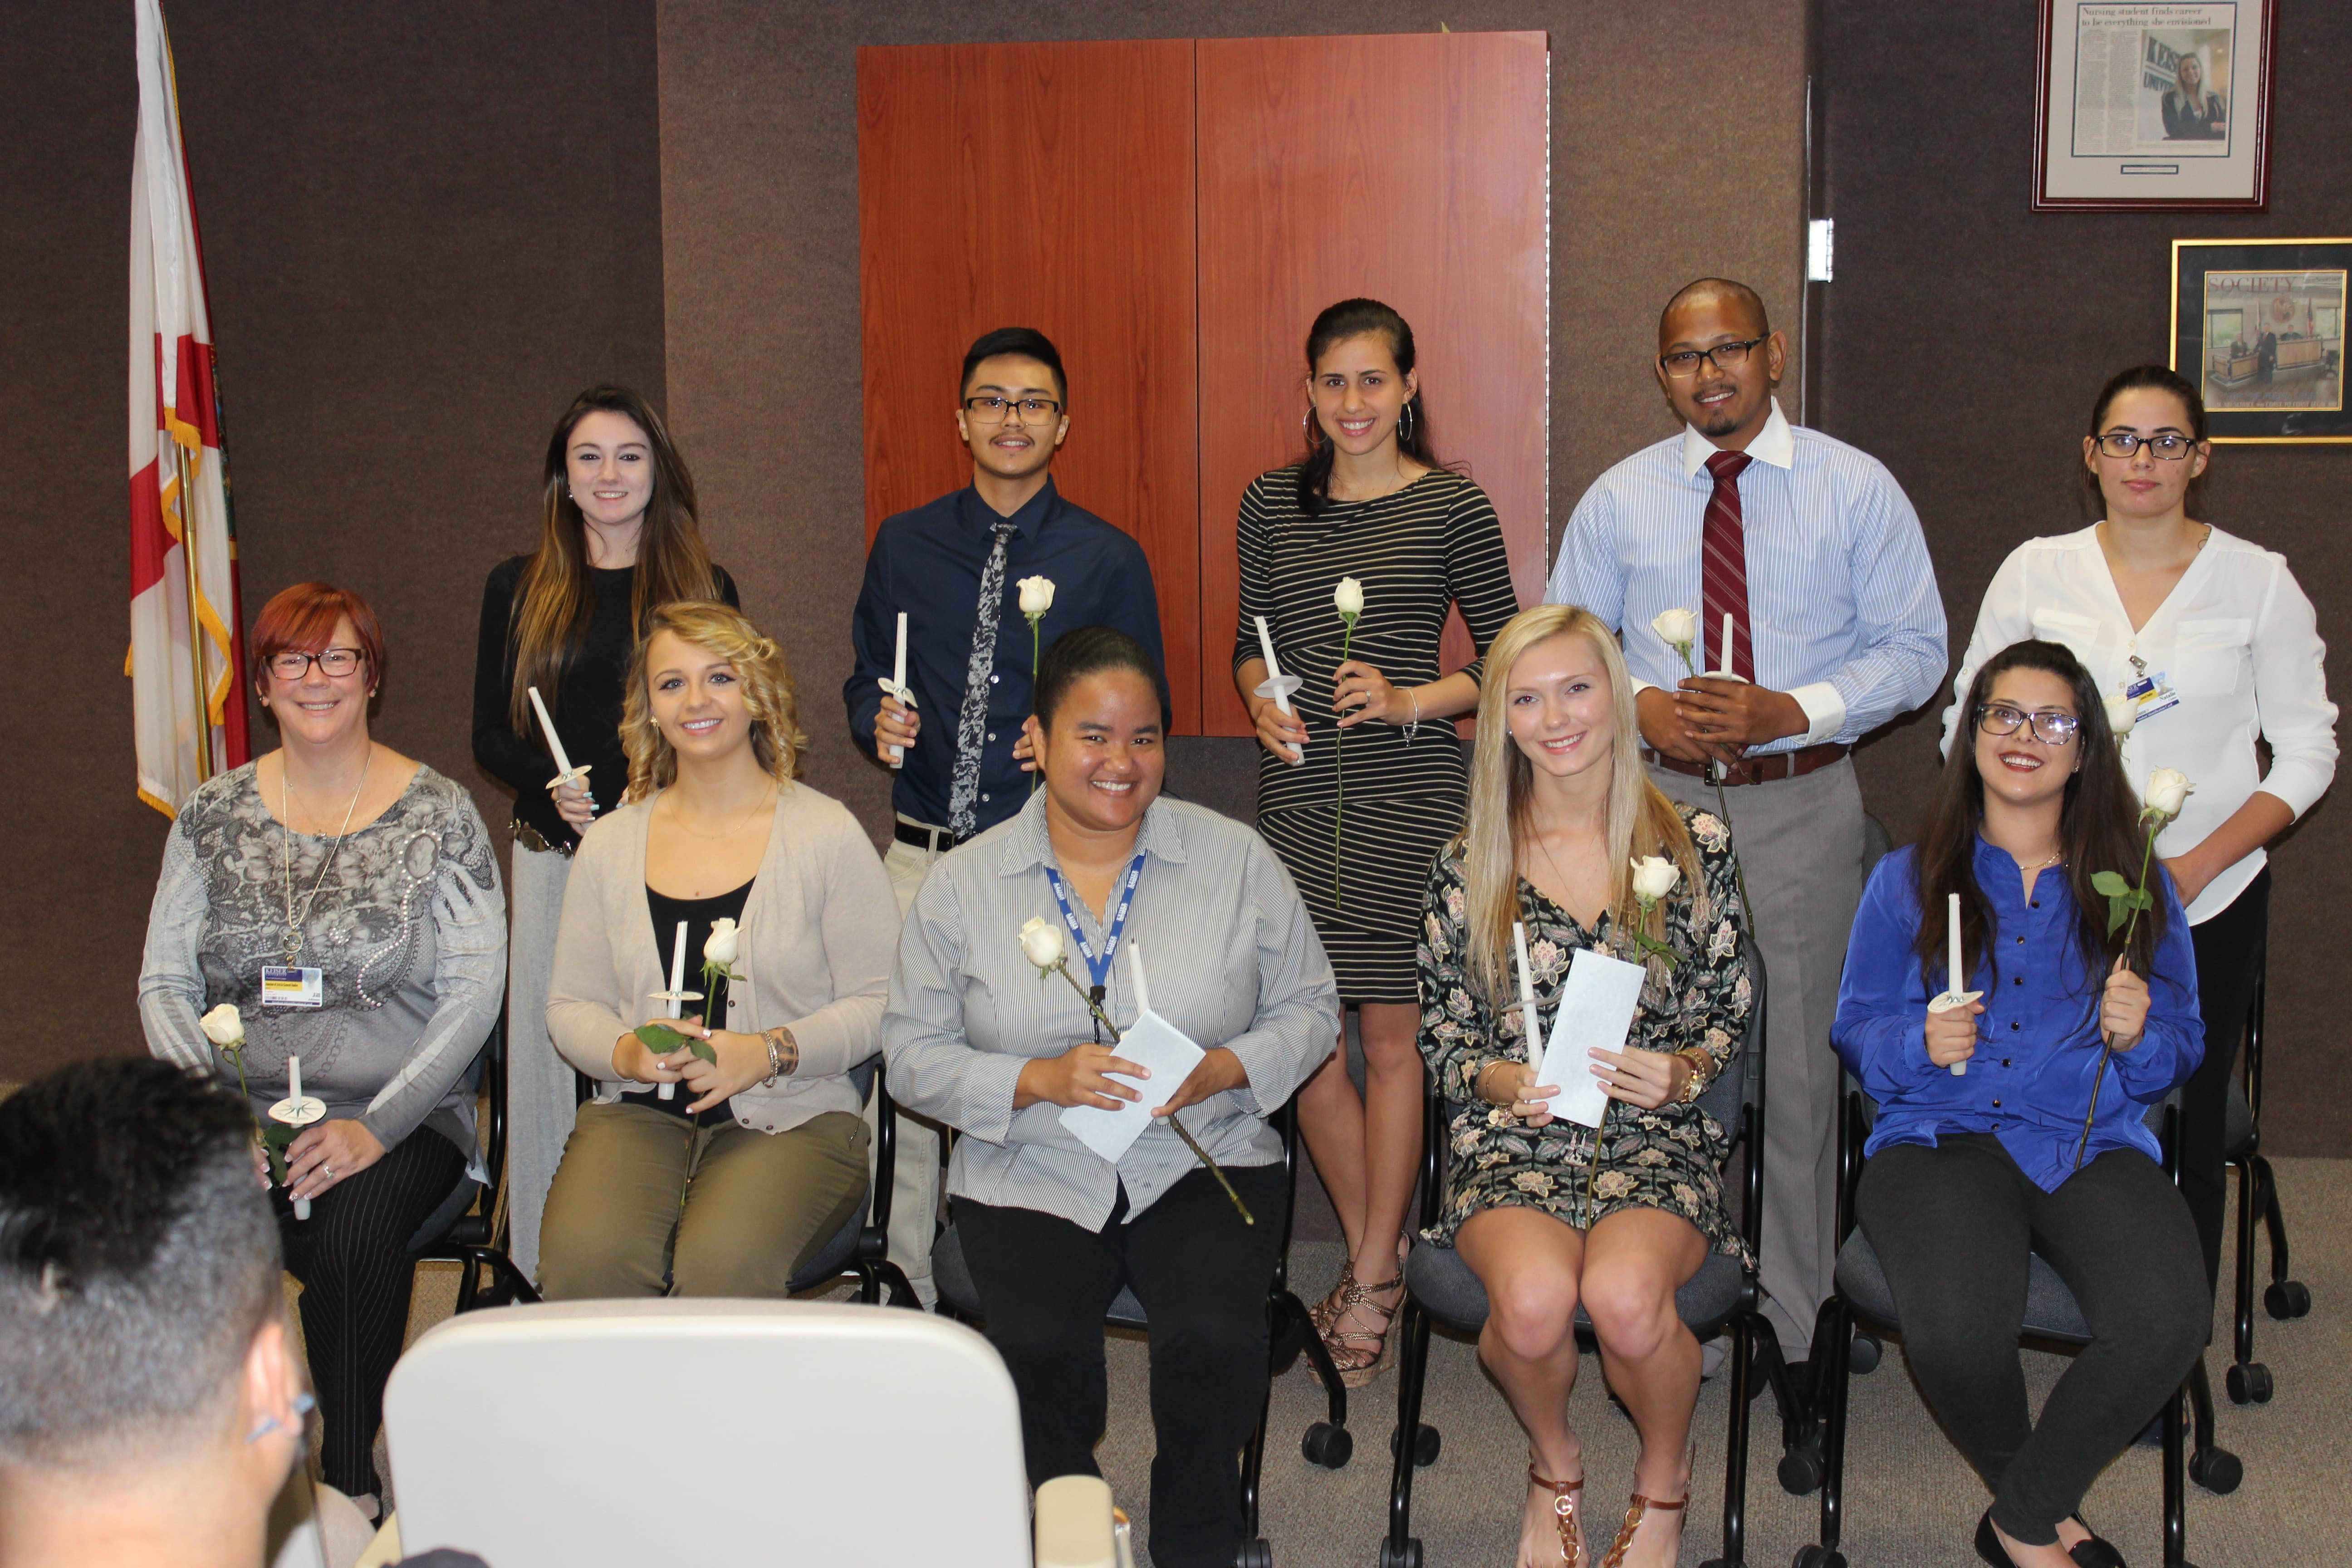 PTK Induction Ceremony Held at the West Palm Beach Campus